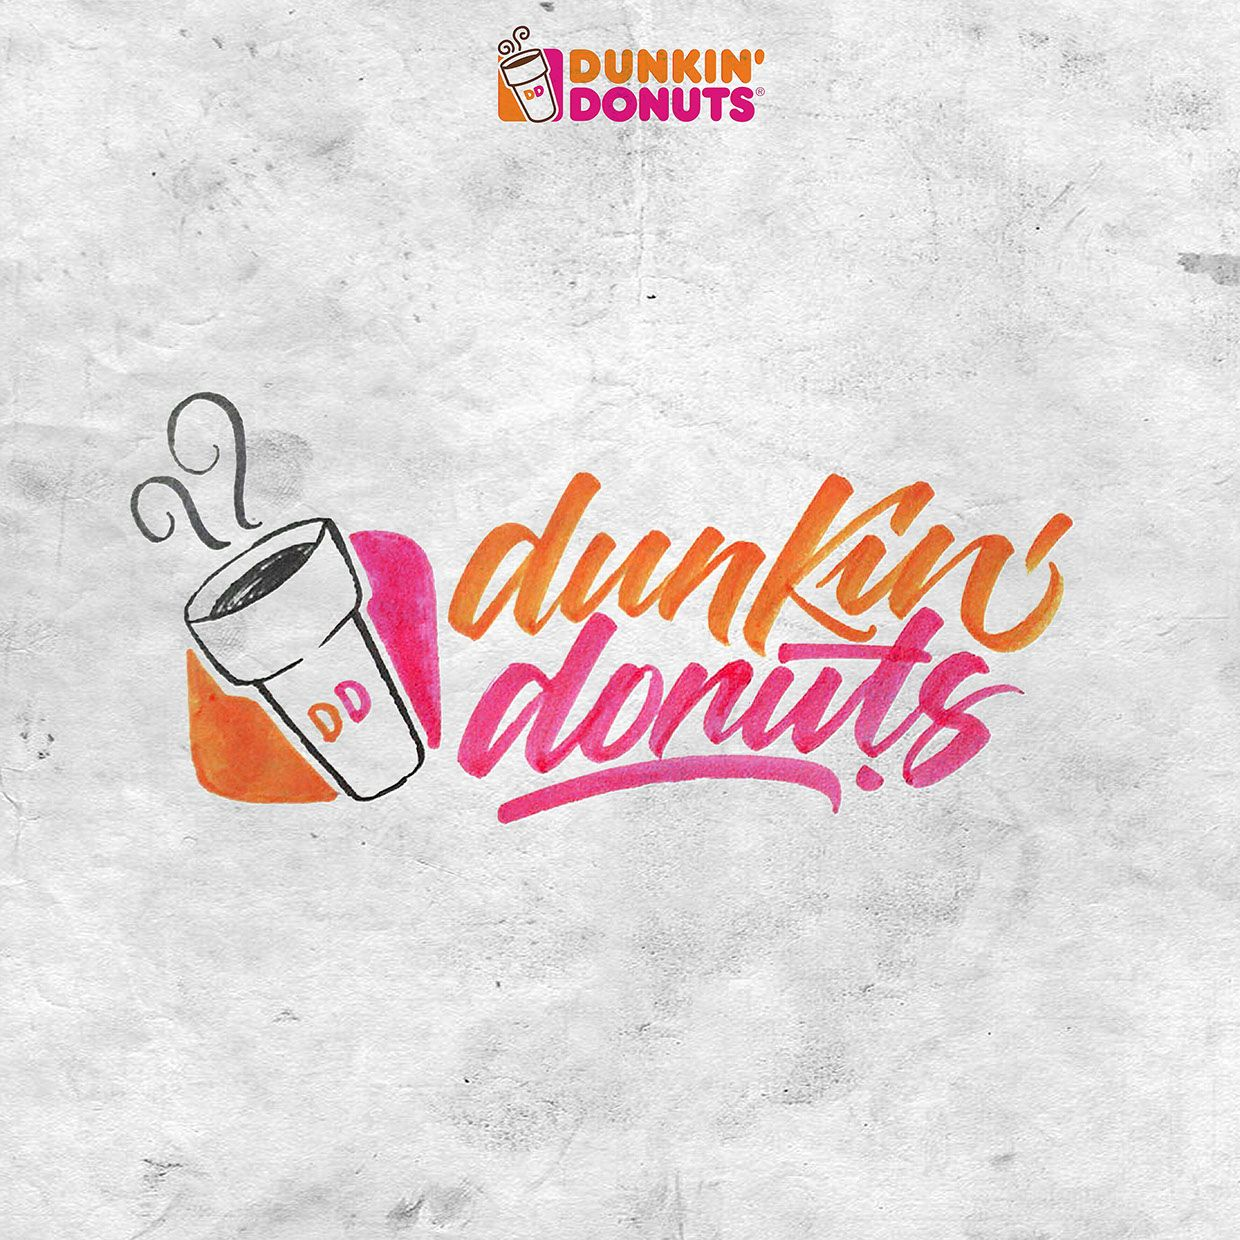 Dunkin Donuts Brush Lettering David Milan